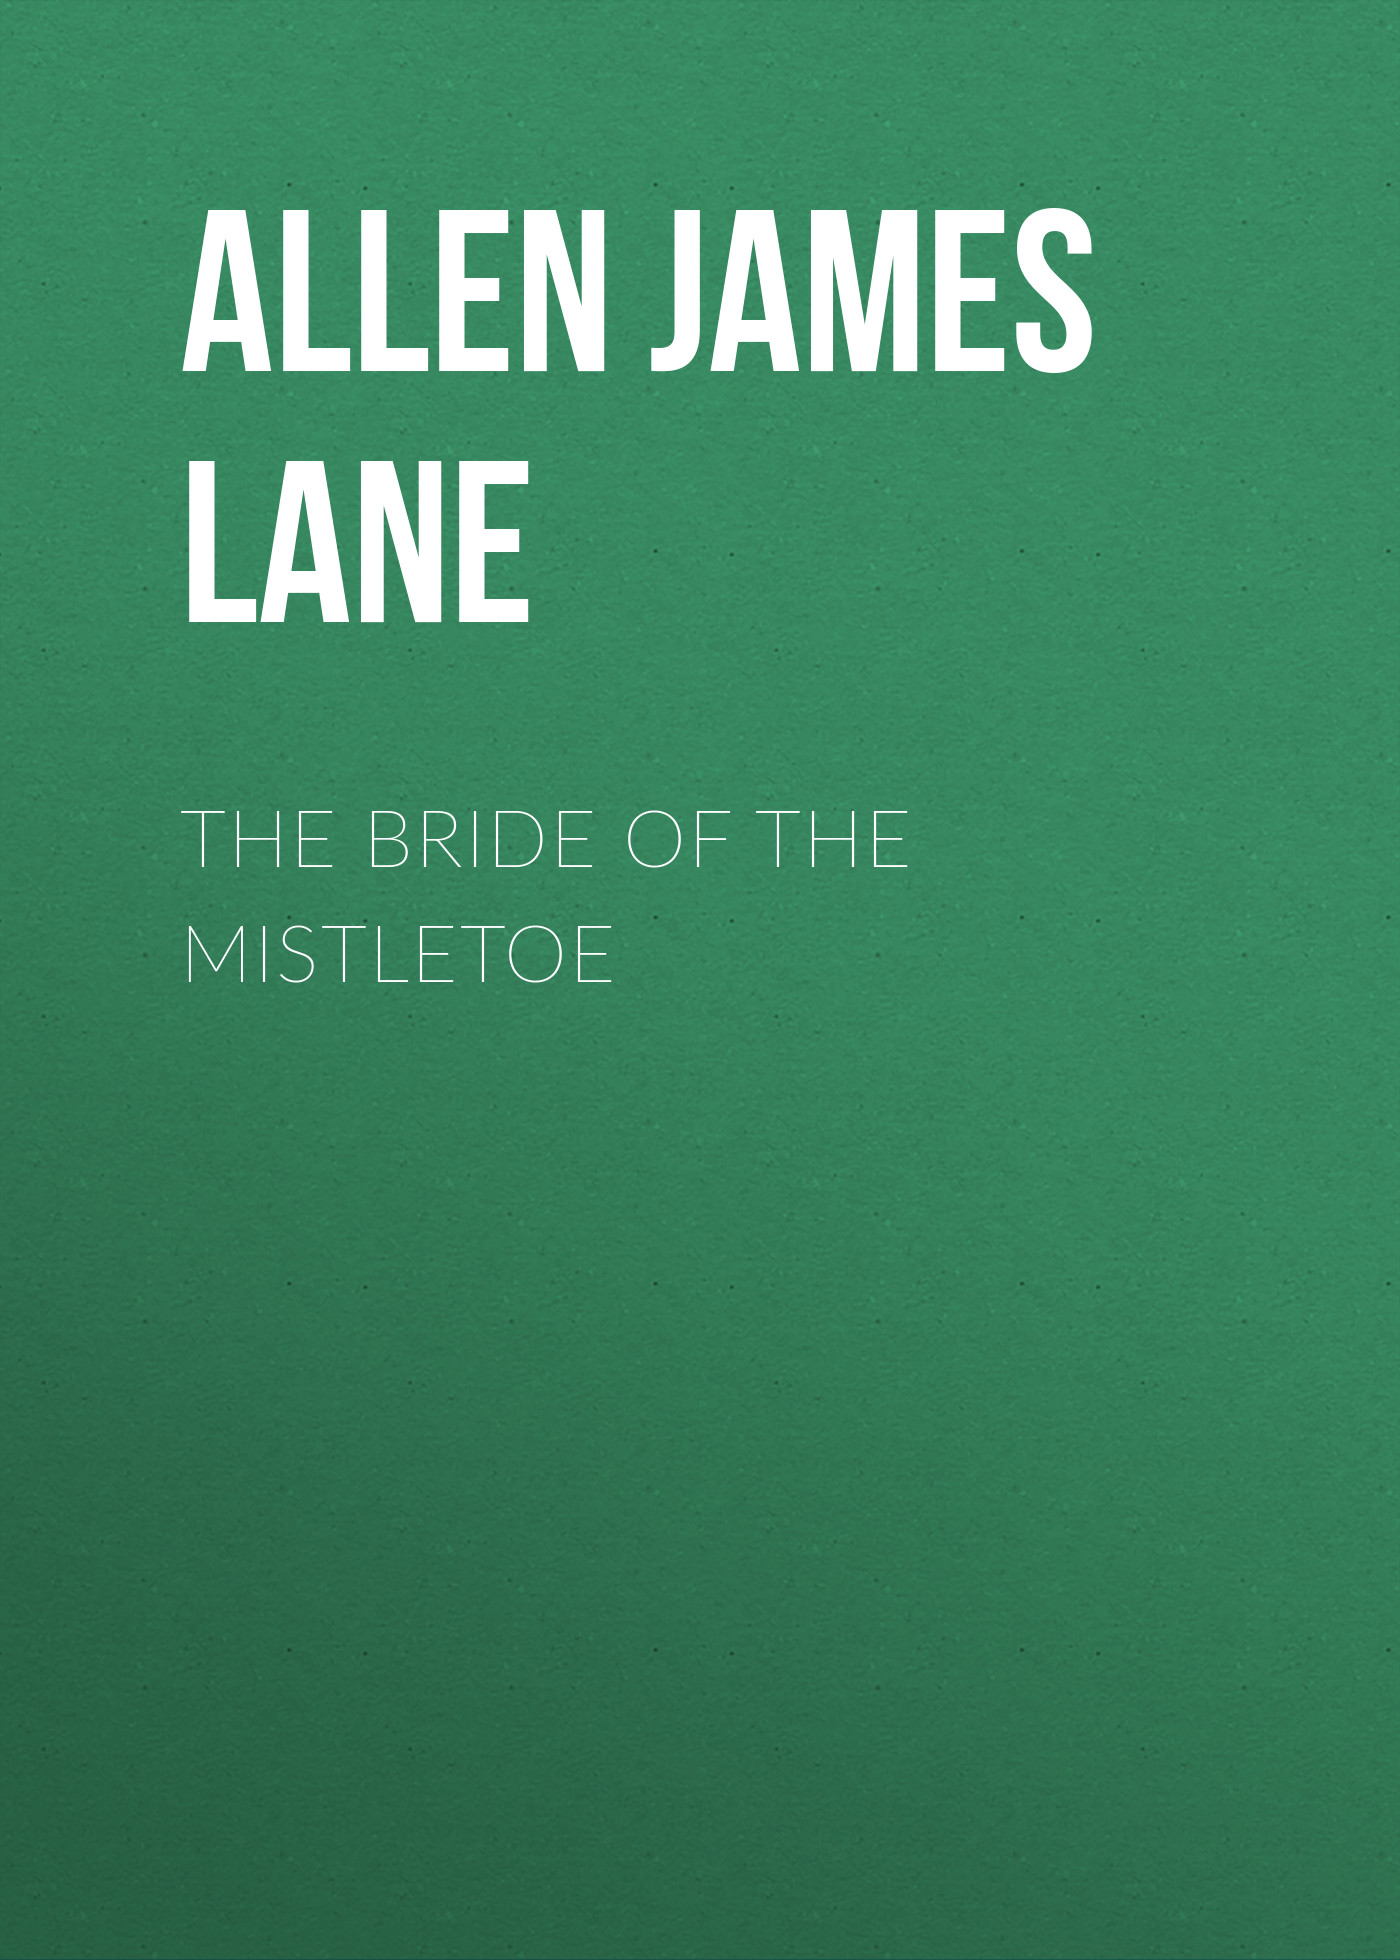 Allen James Lane The Bride of the Mistletoe allen james lane the mettle of the pasture